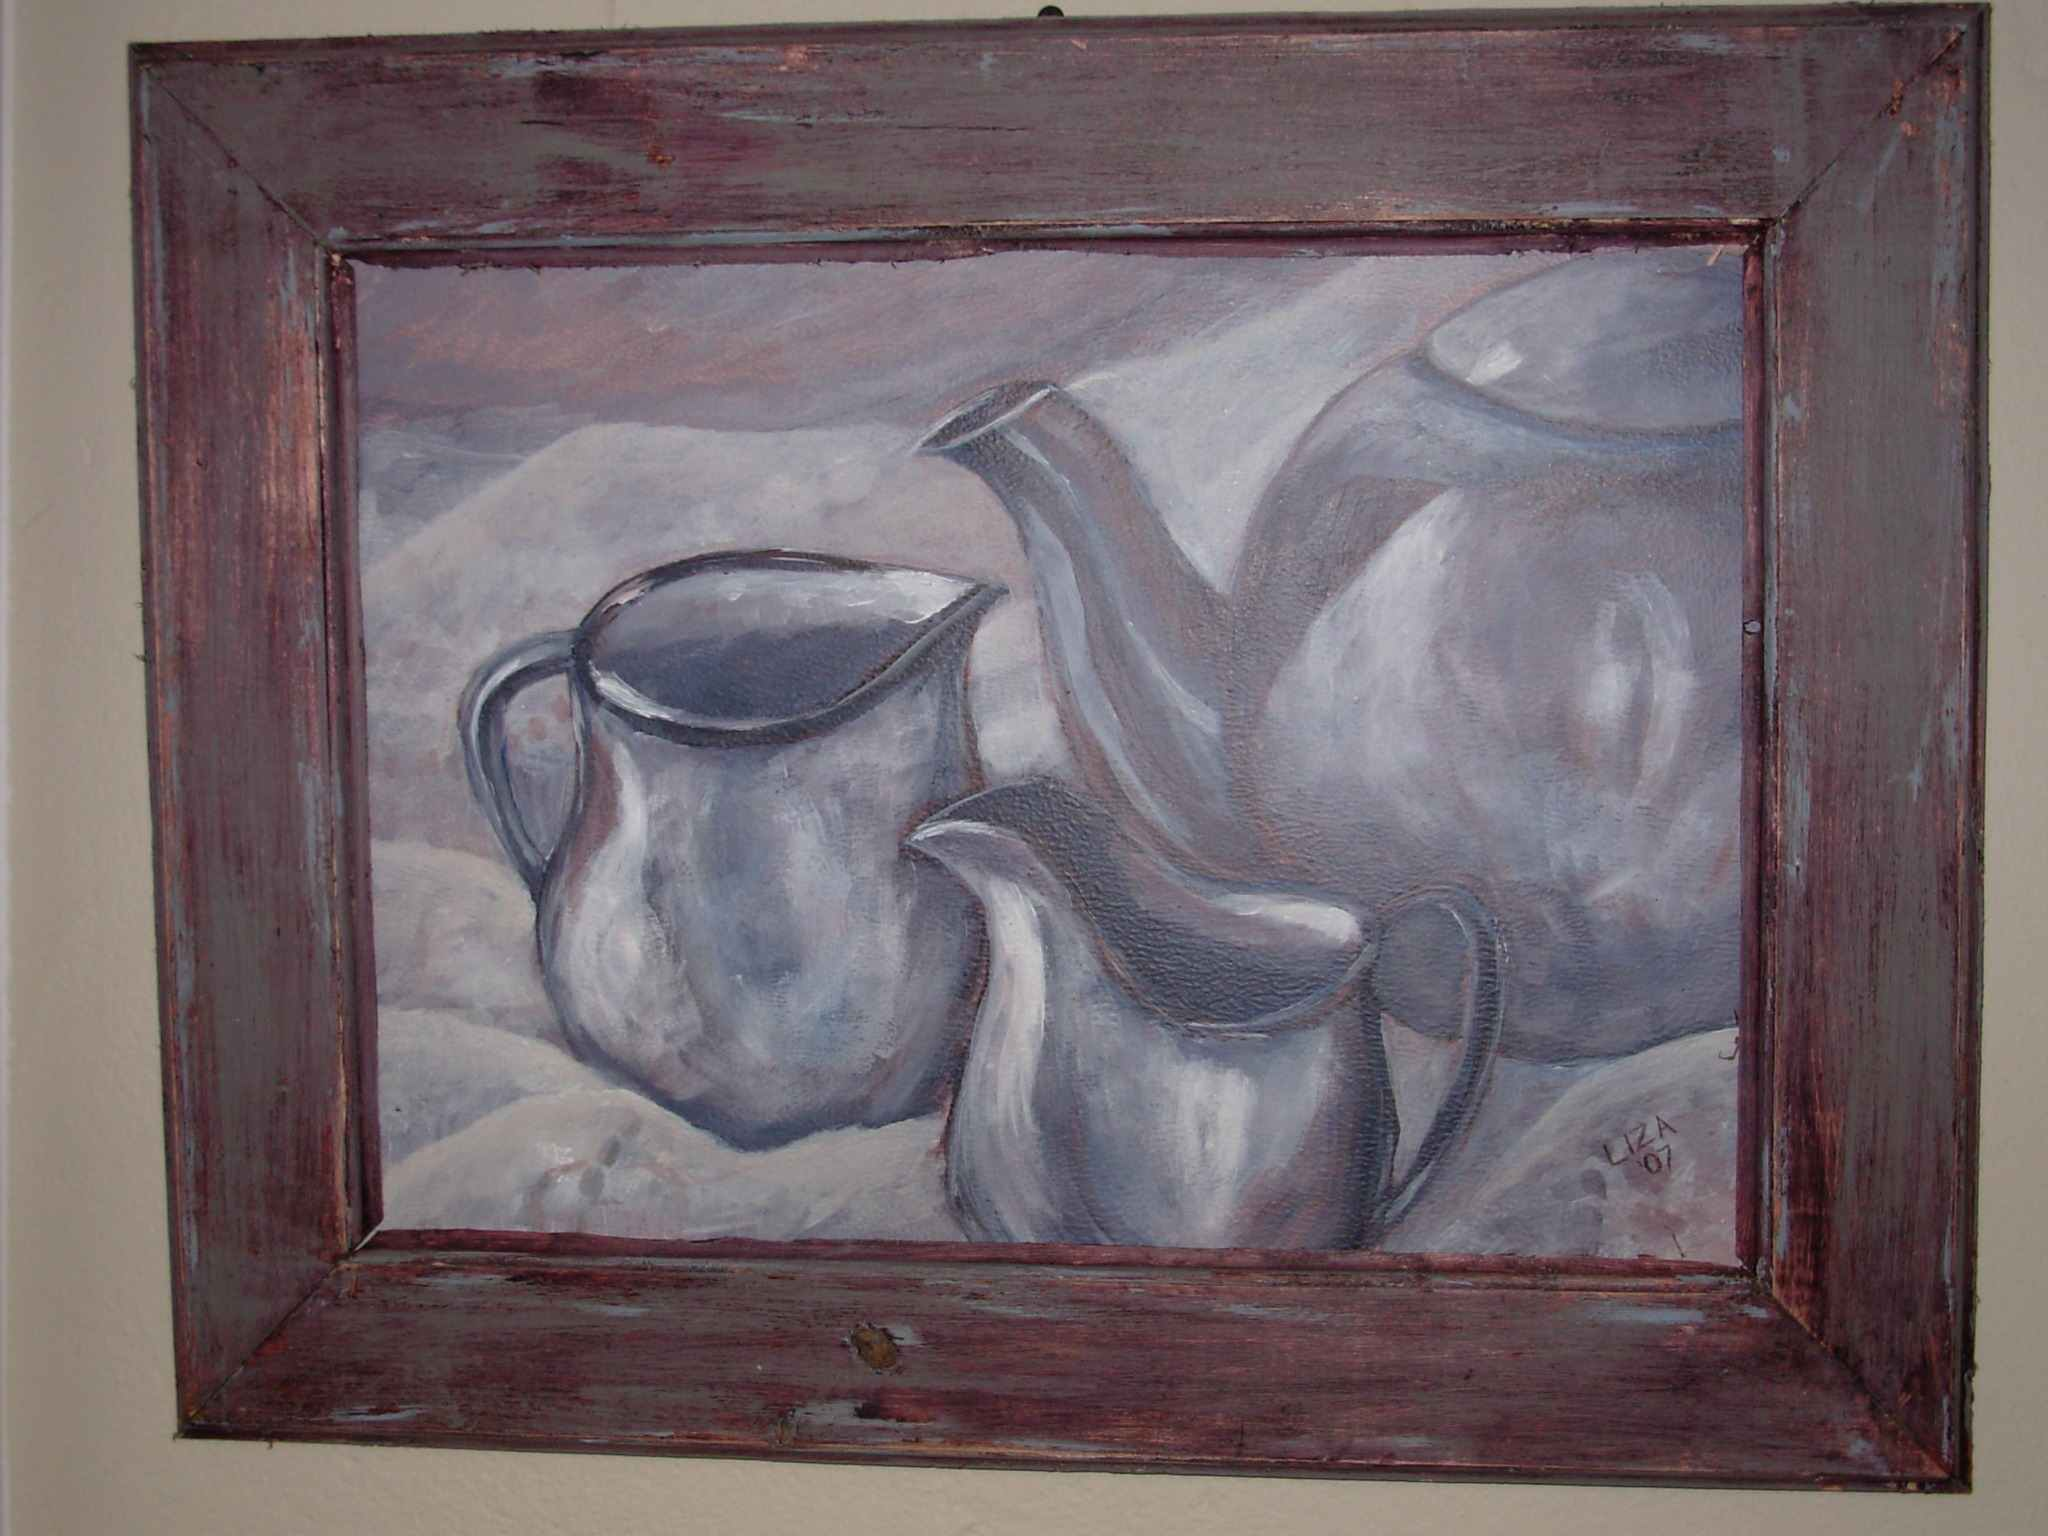 Still life - Teaset (Framed)